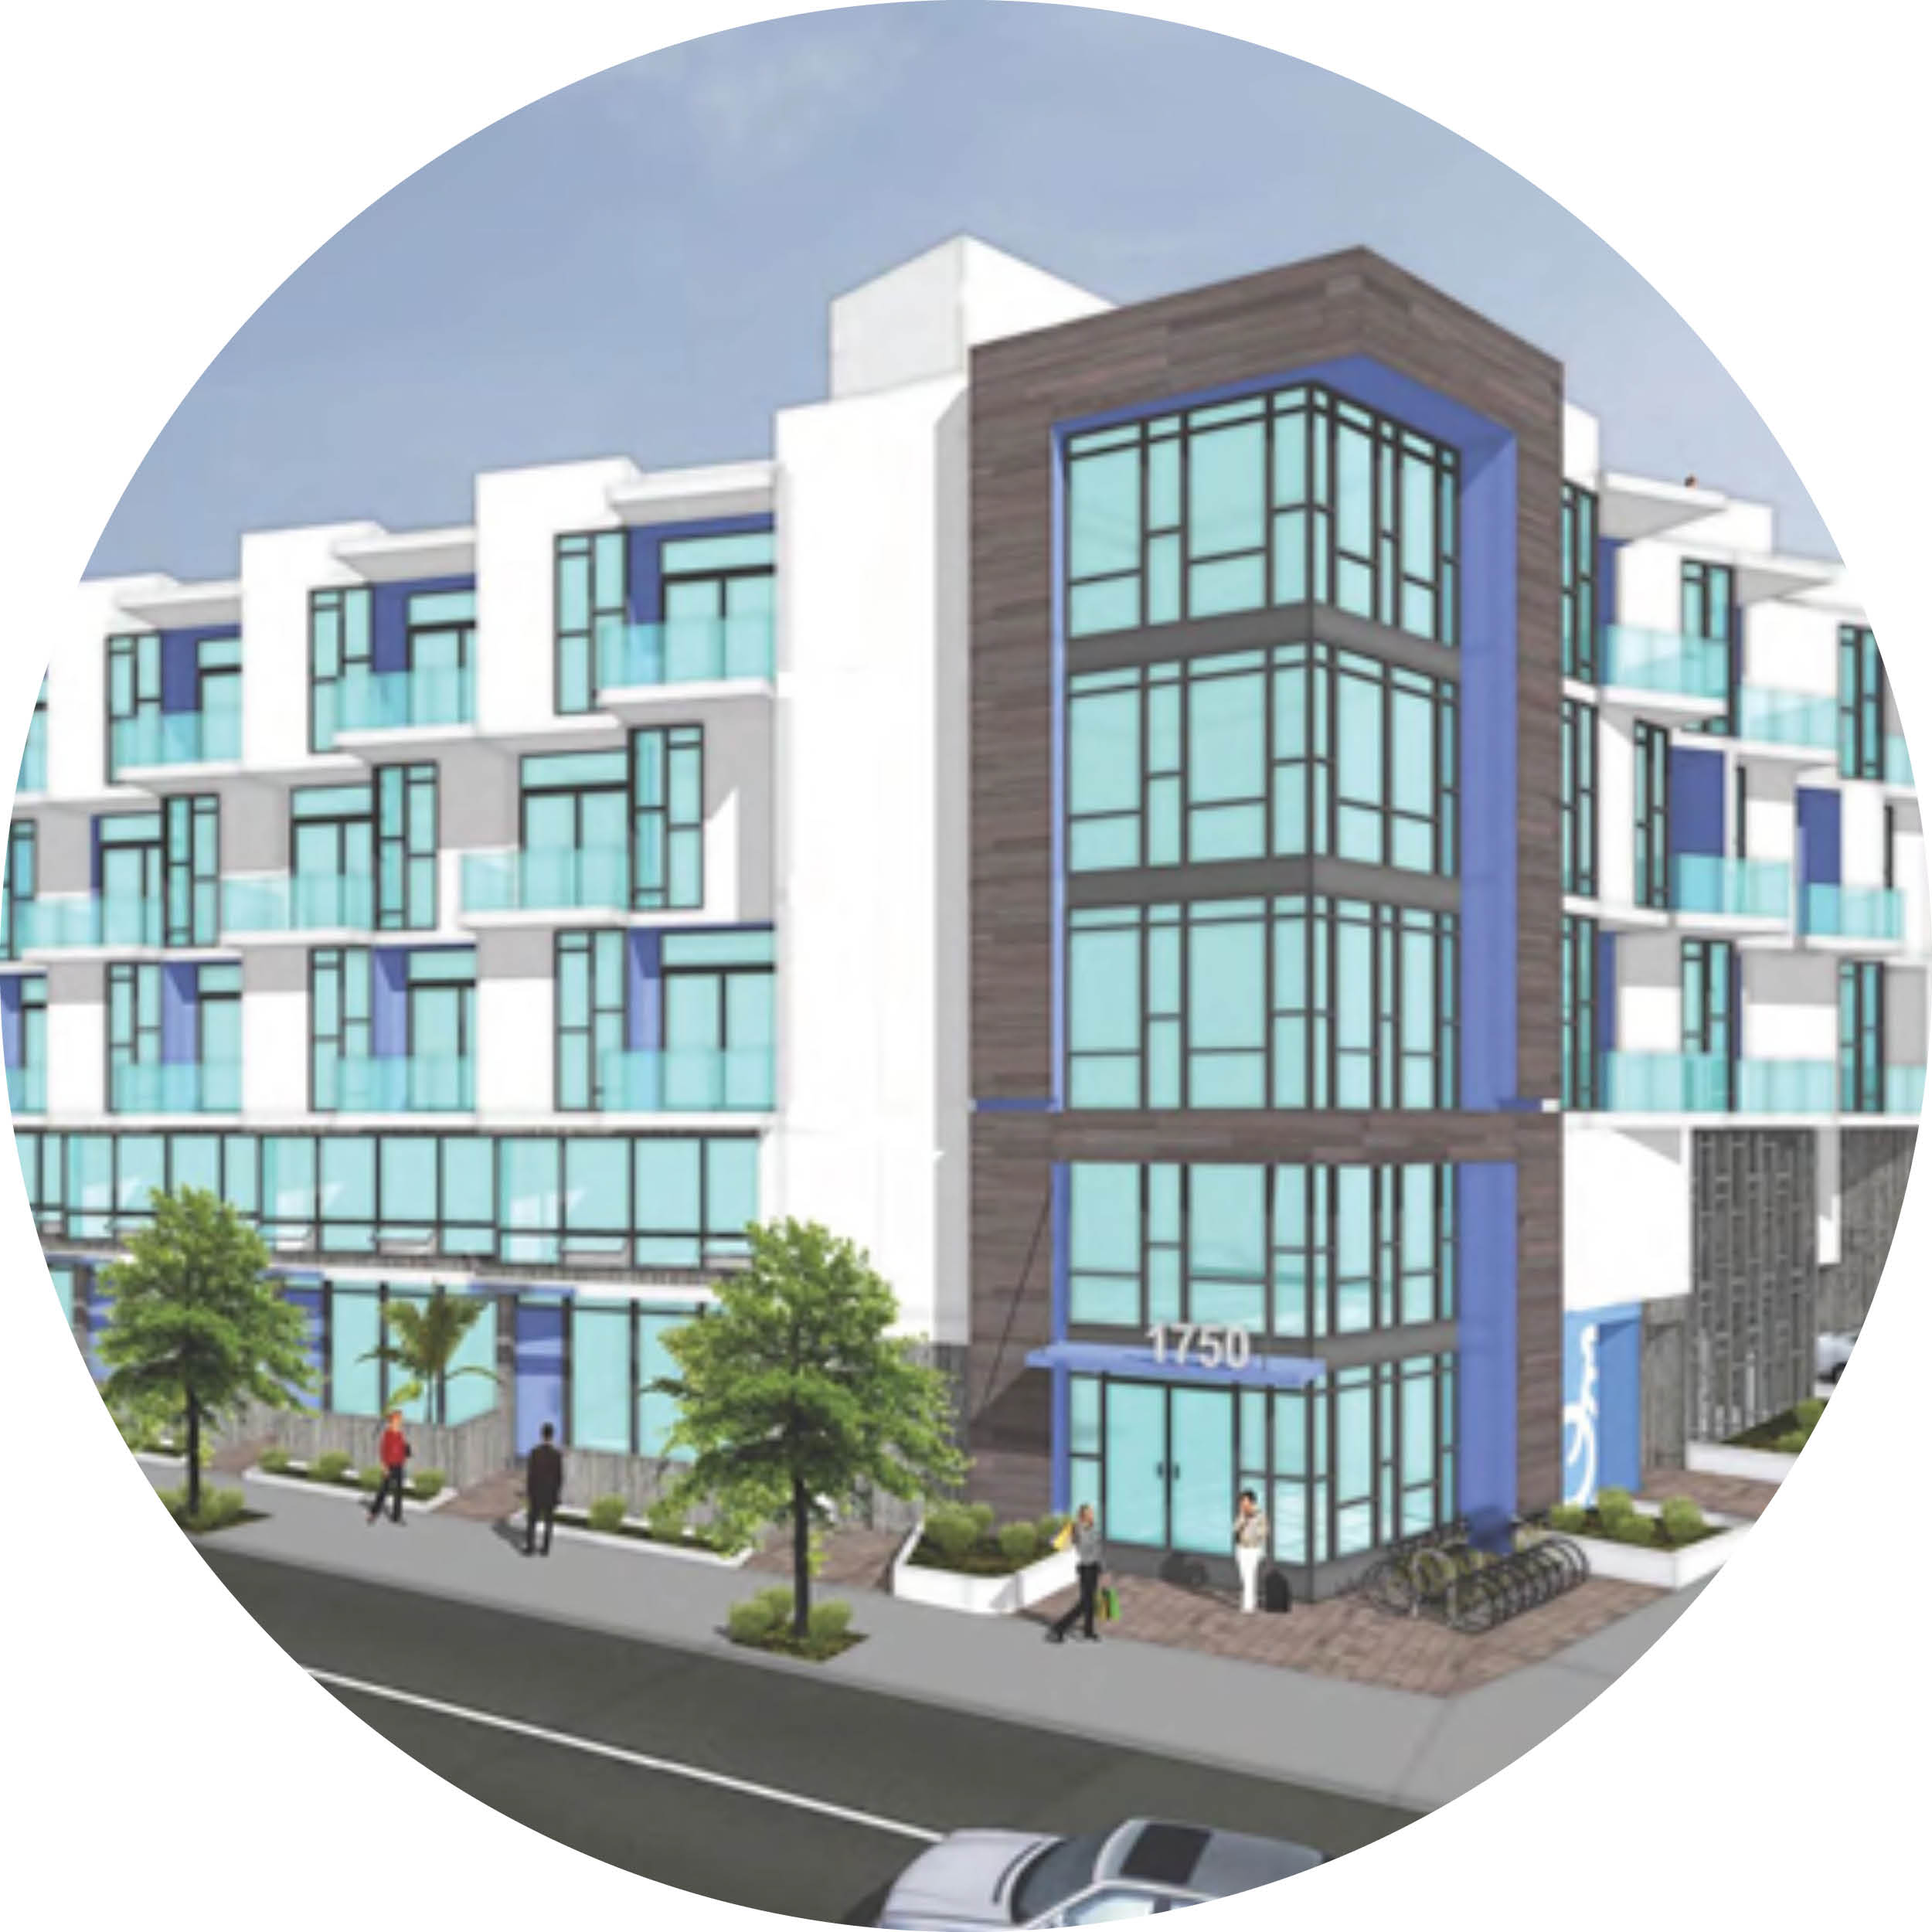 1750 glendale blvd - XX Traditional + Live-Work Units, Off-Menu Density Bonus in a Very High Fire Hazard Severity Zone, Outreach to Council District 13, the Silver Lake Neighborhood Council, and the Silver Lake BID